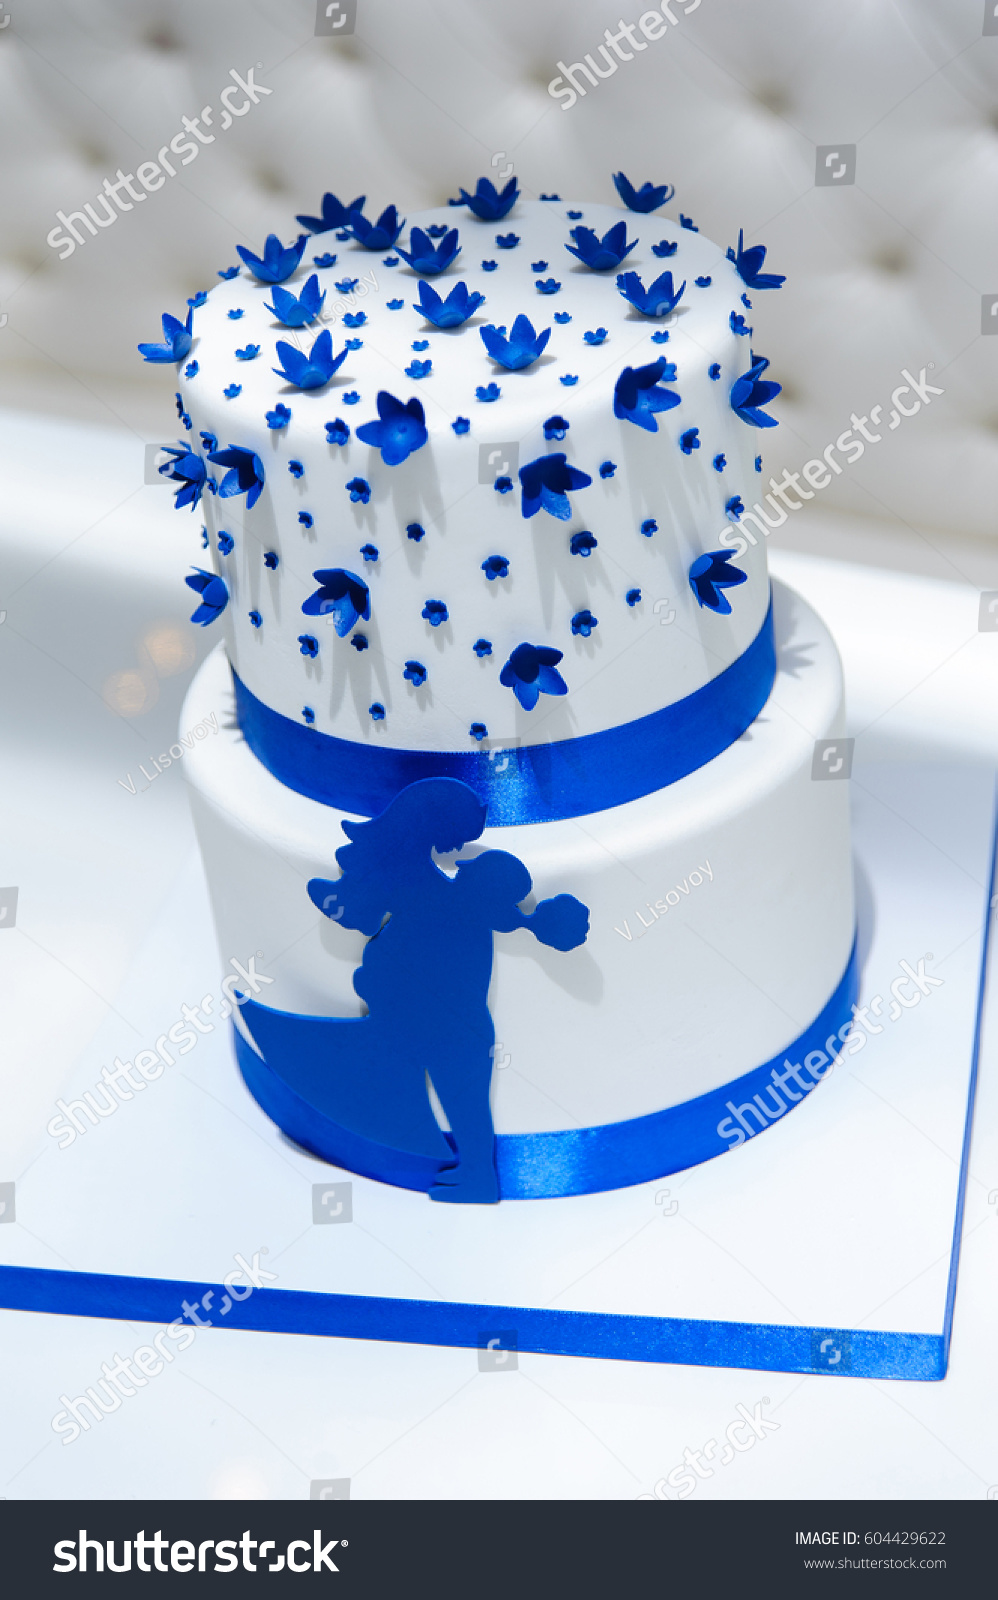 White wedding cake blue flowers bow stock photo royalty free white wedding cake with blue flowers and a bow also with the figures of the izmirmasajfo